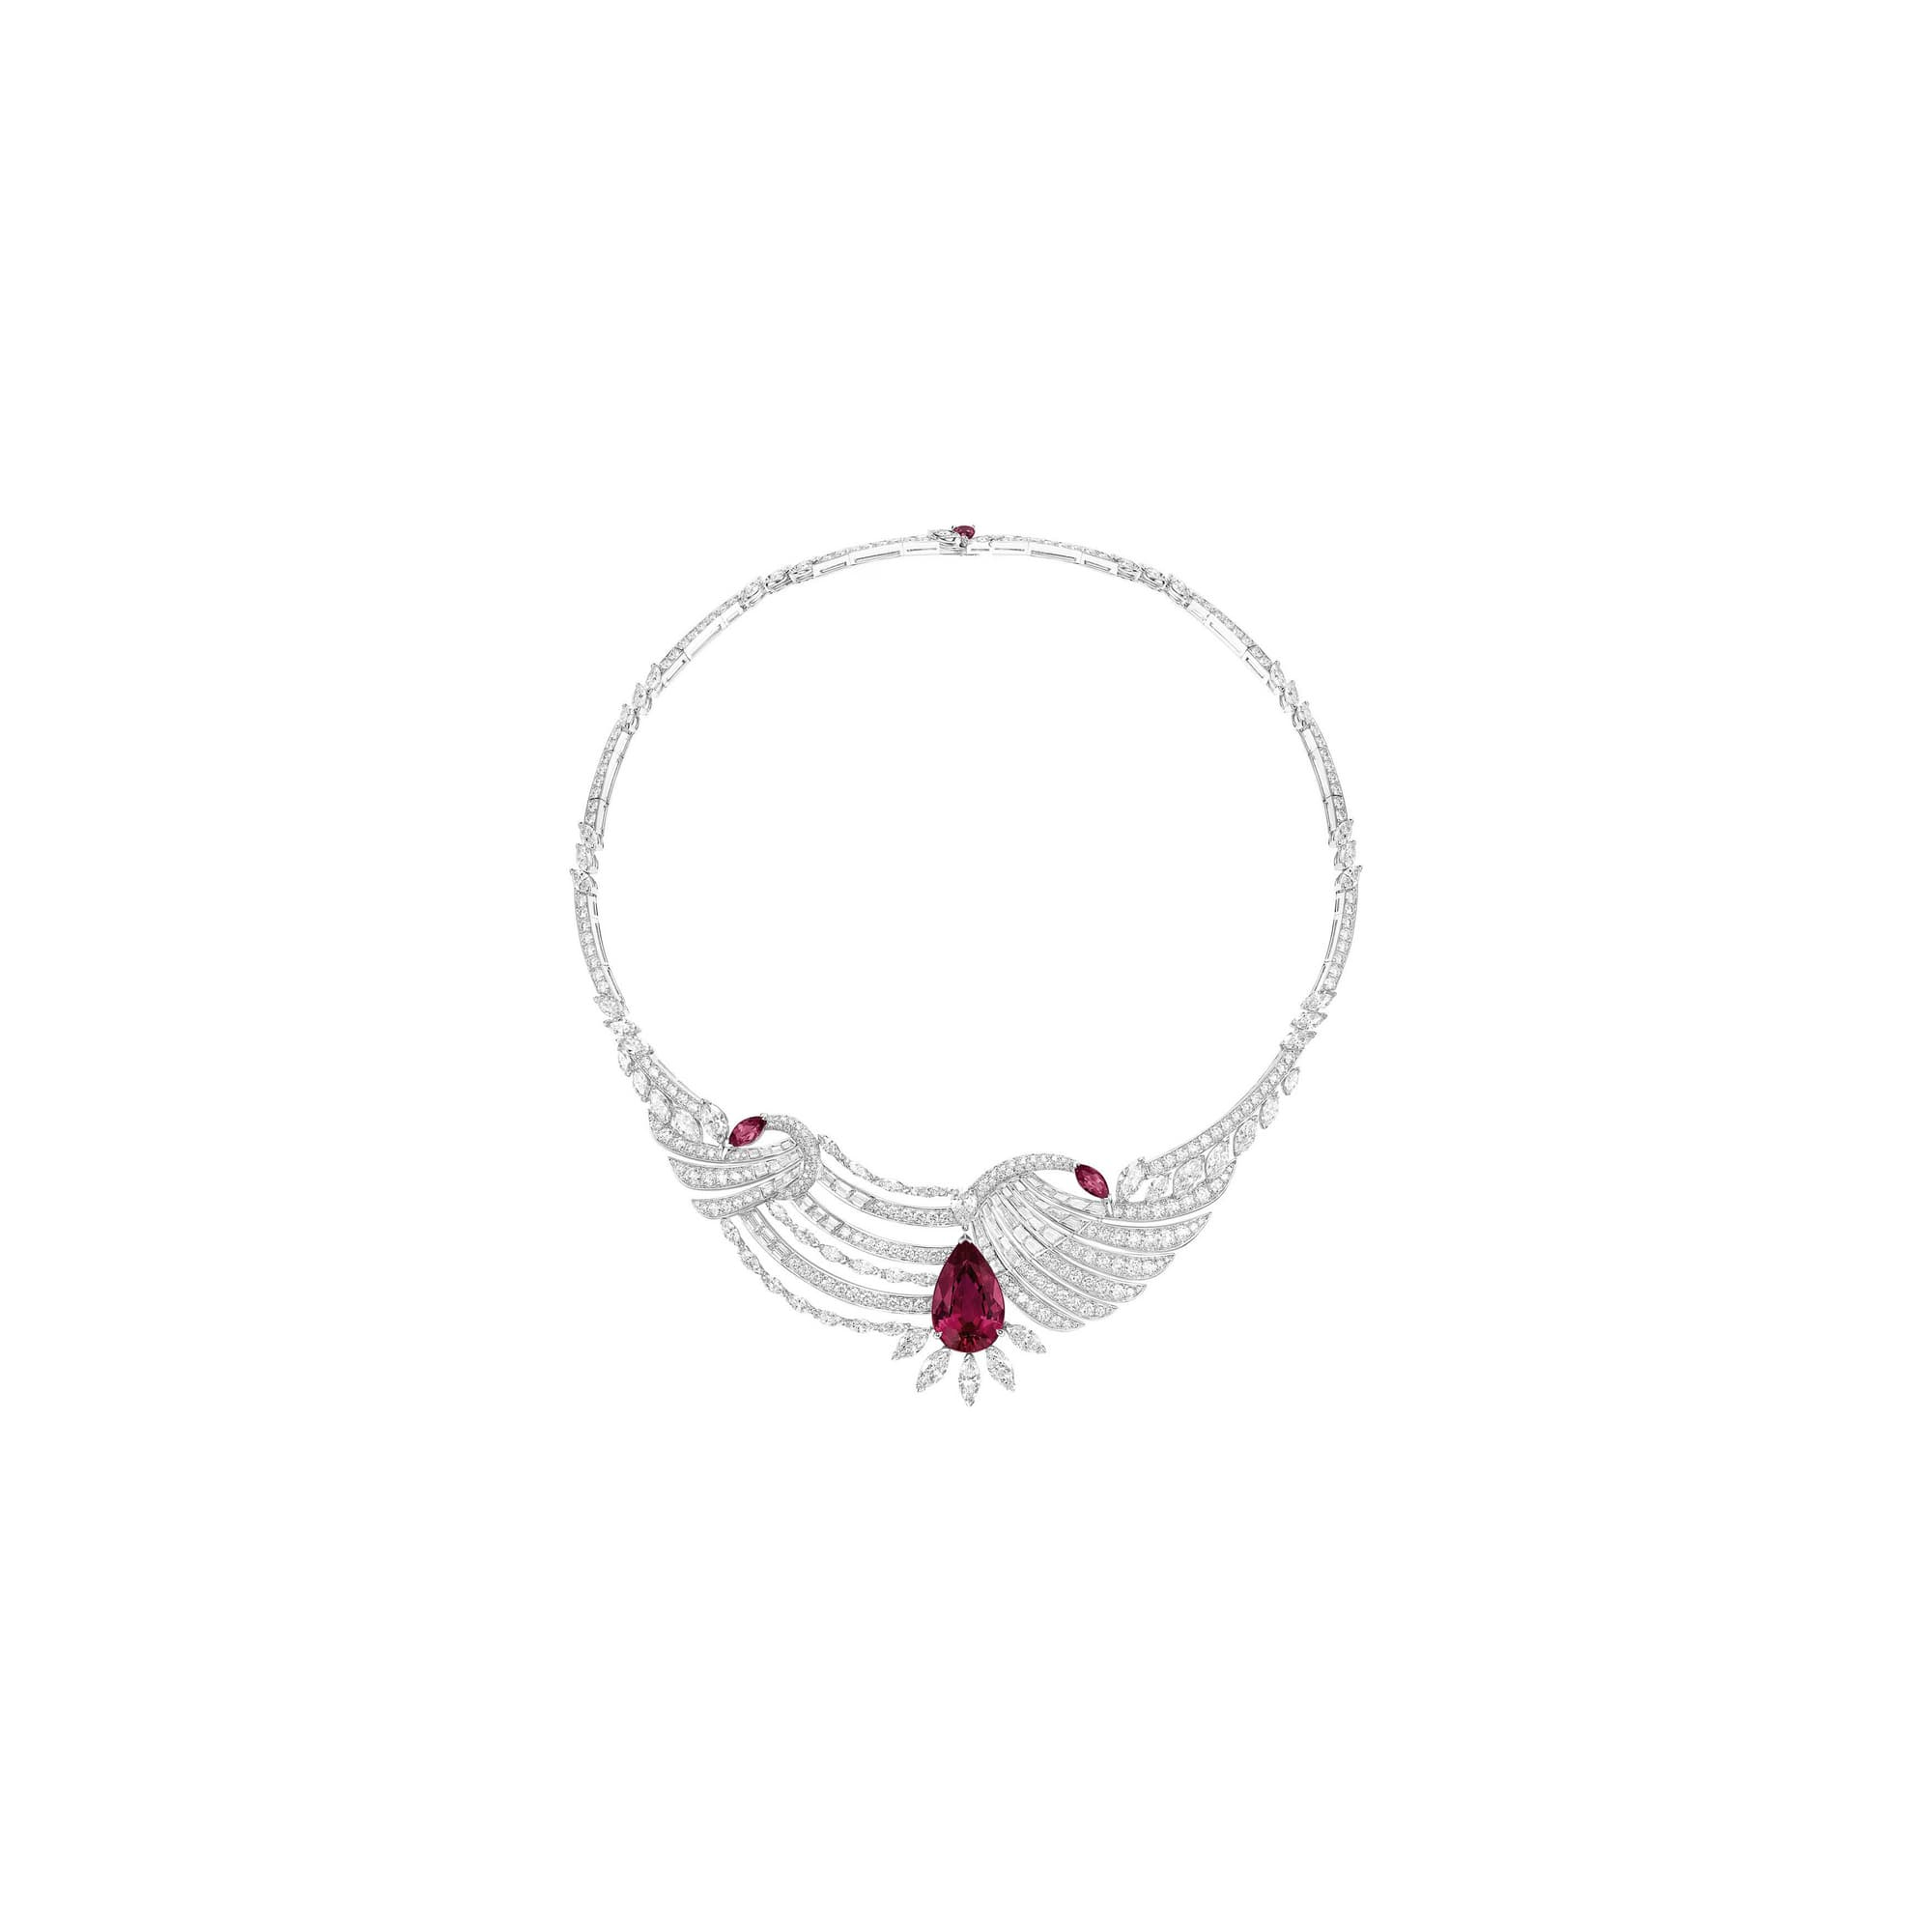 piaget high jewellery diamond necklace